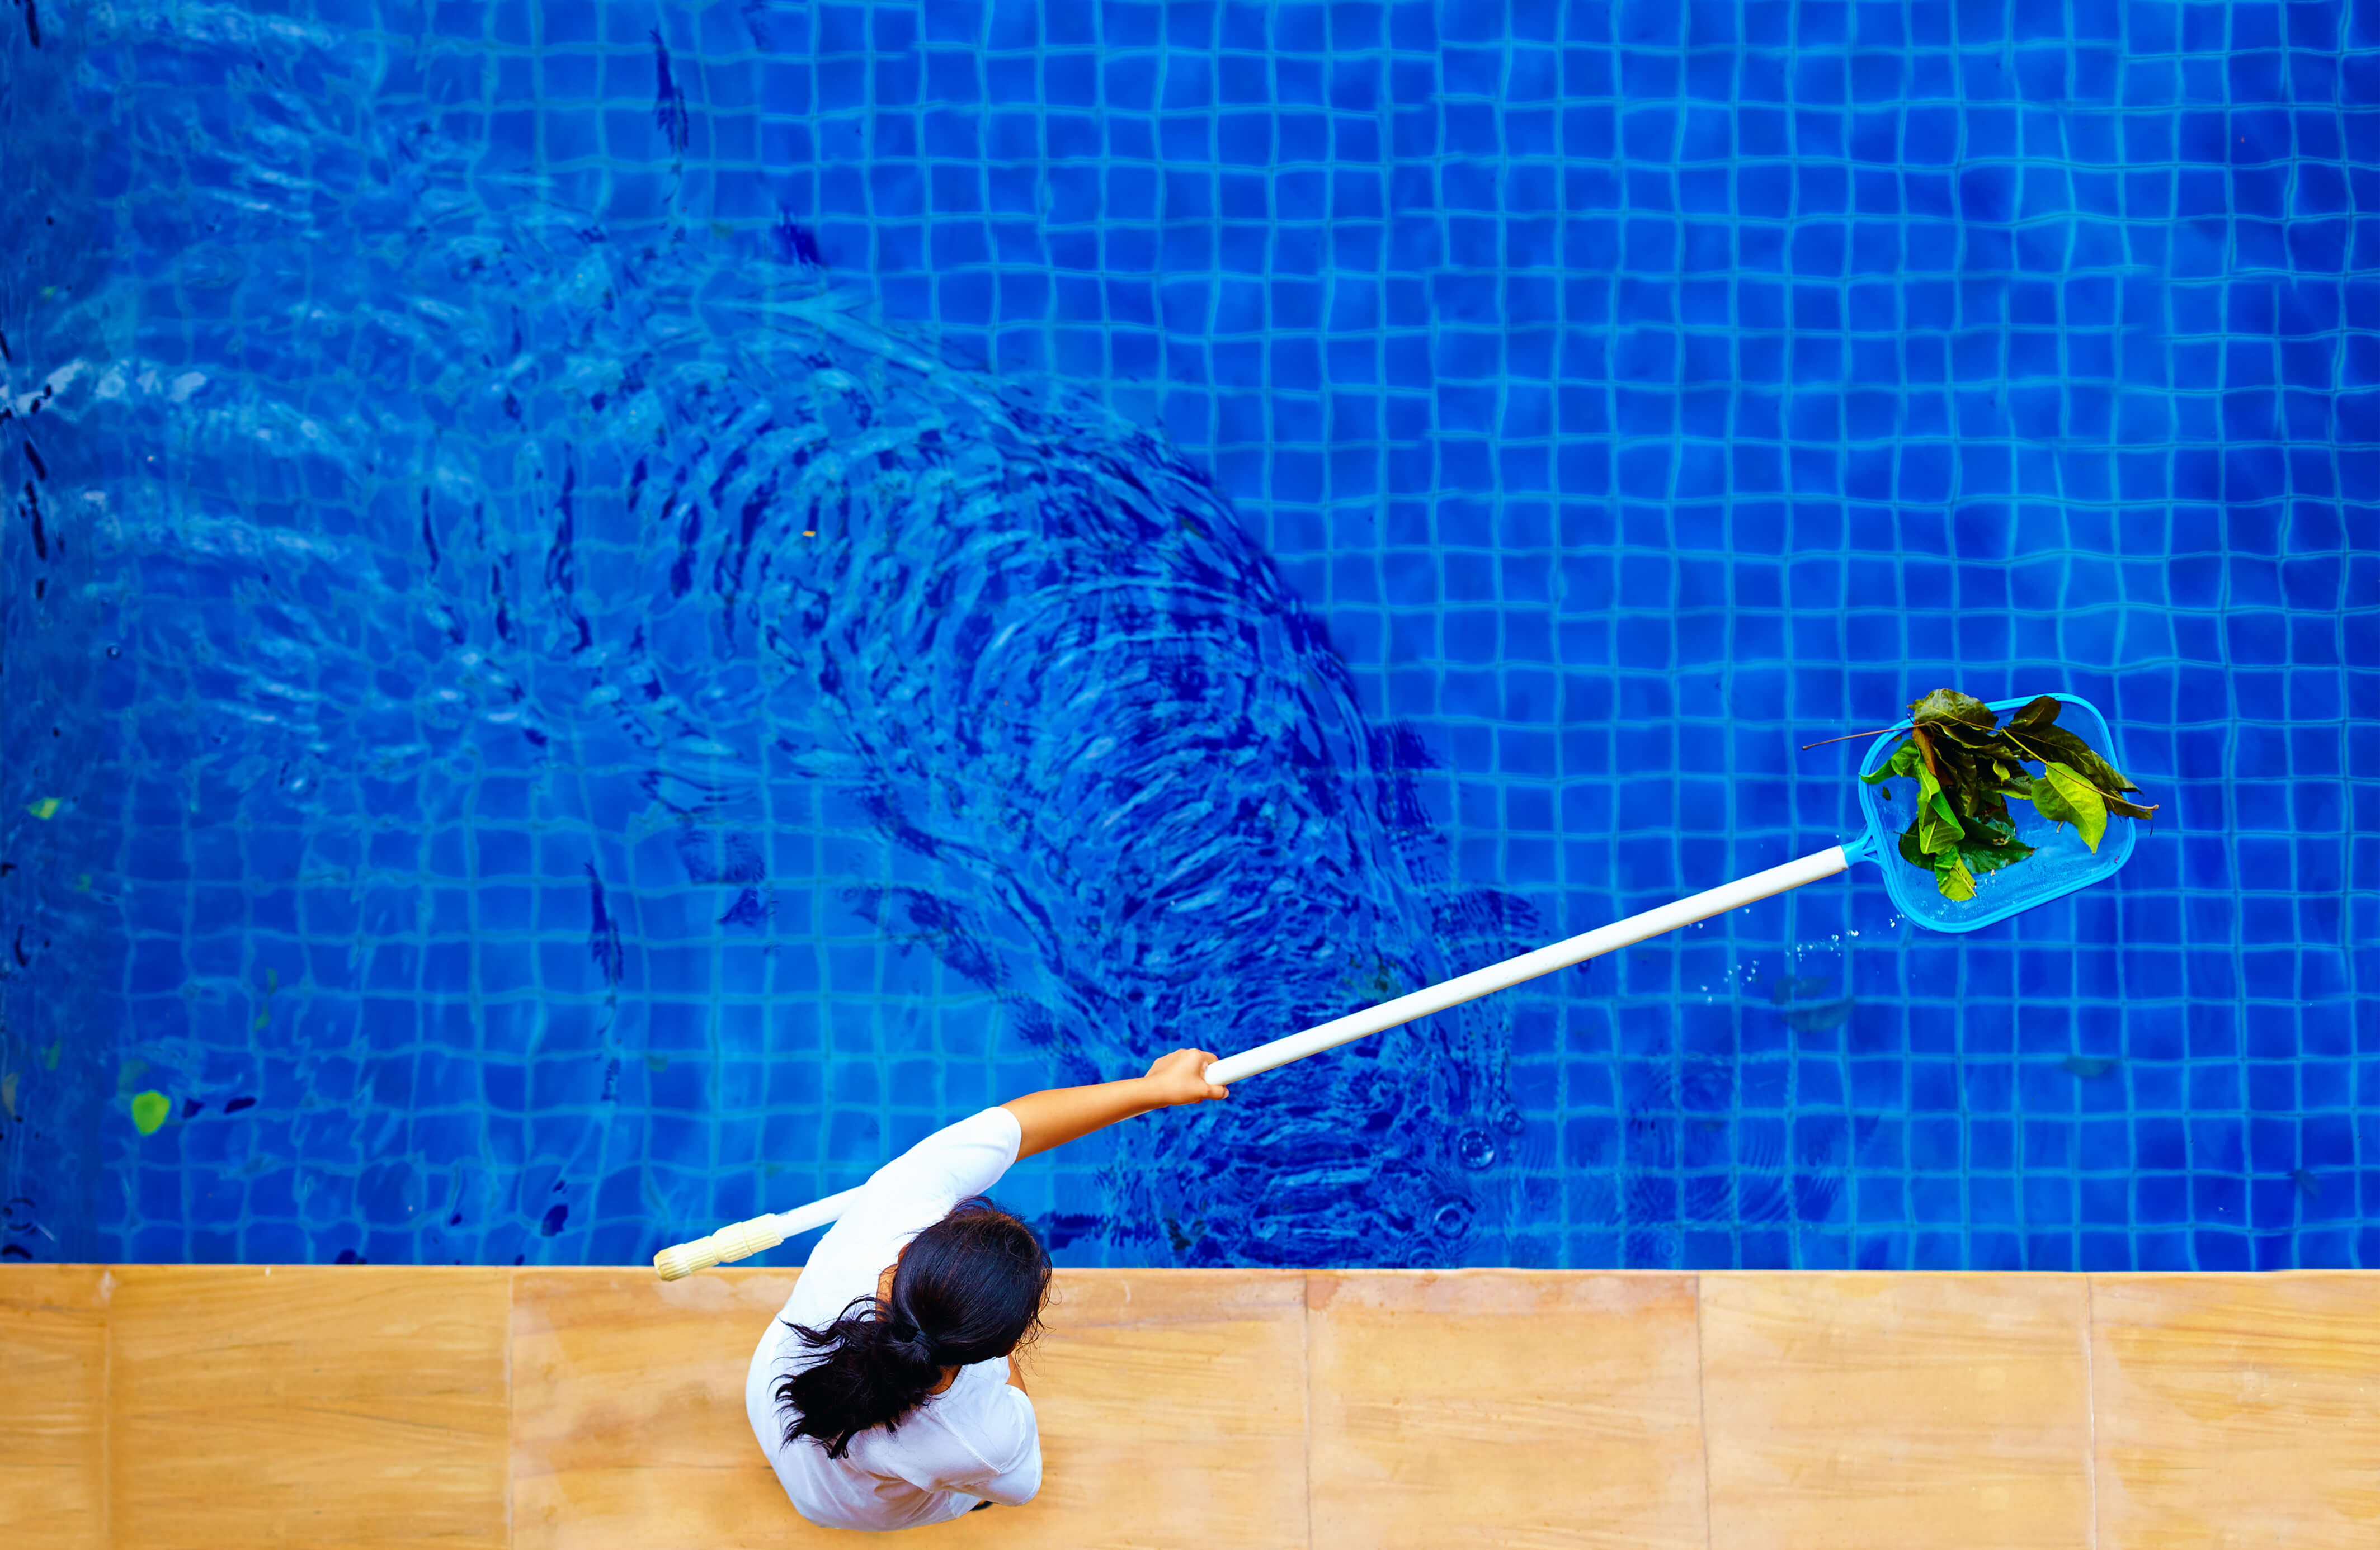 woman, personnel cleaning the pool from leaves